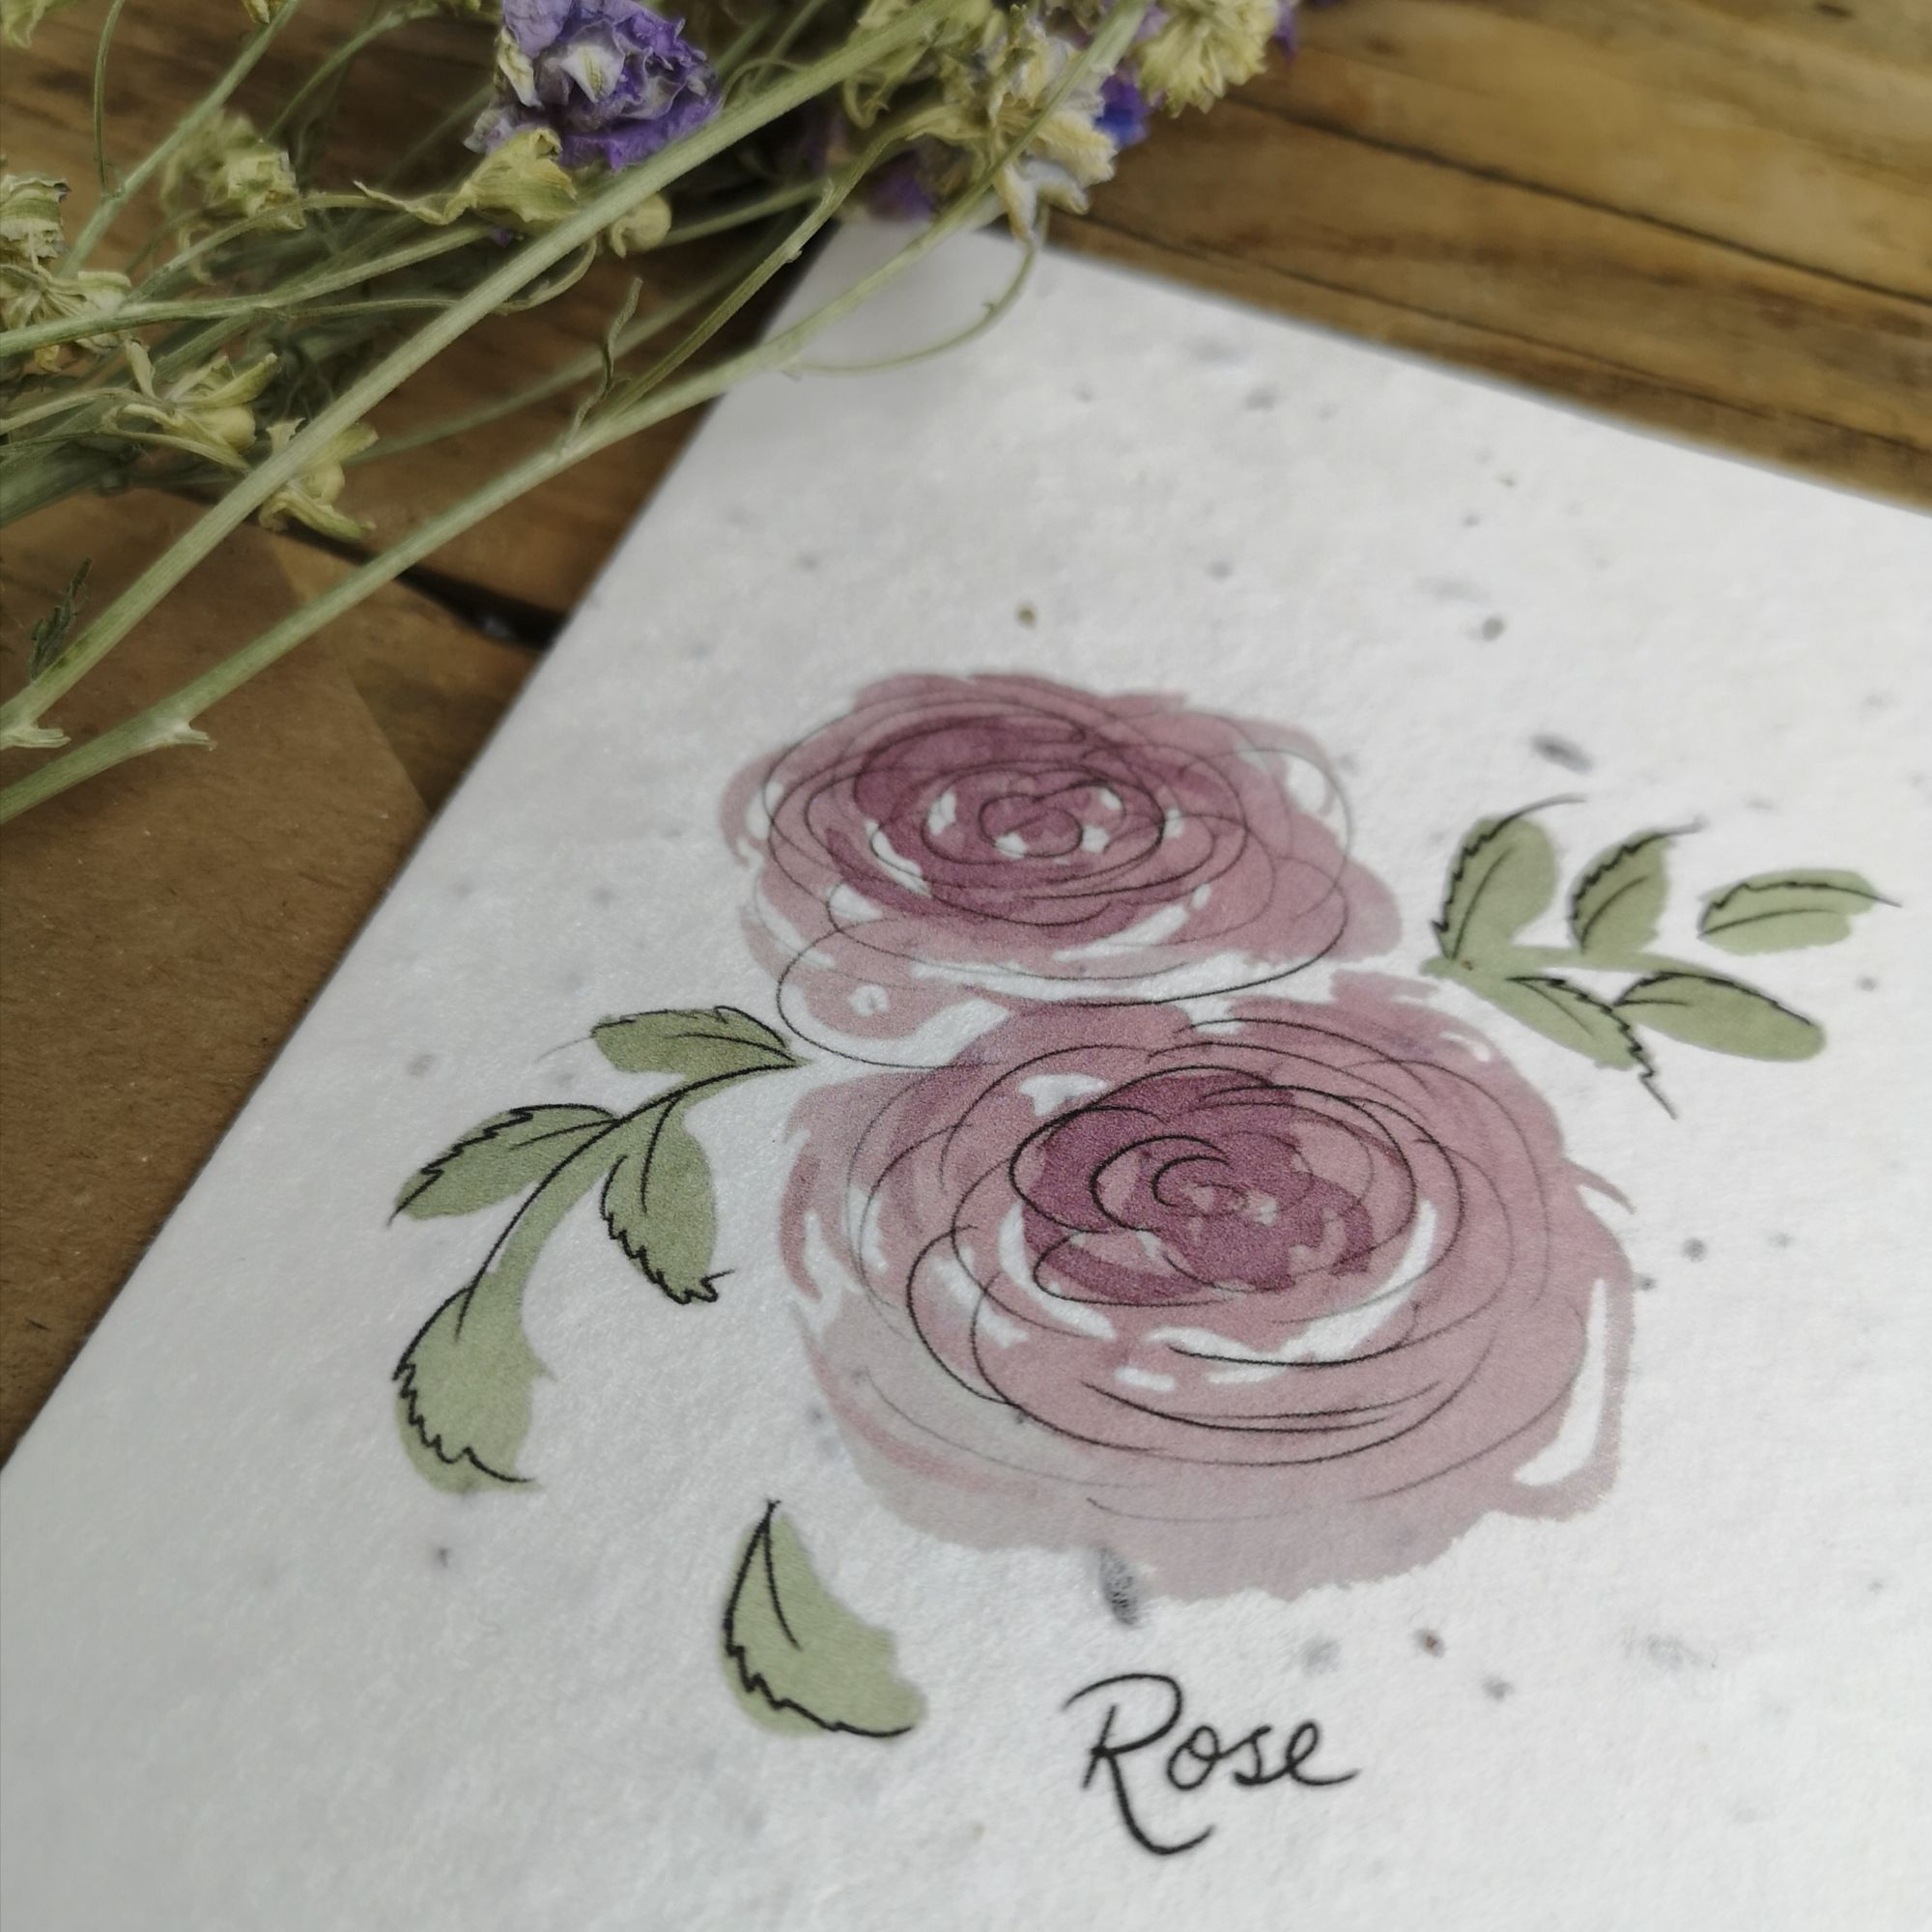 Watercolour Rose on Plantable Seed Paper